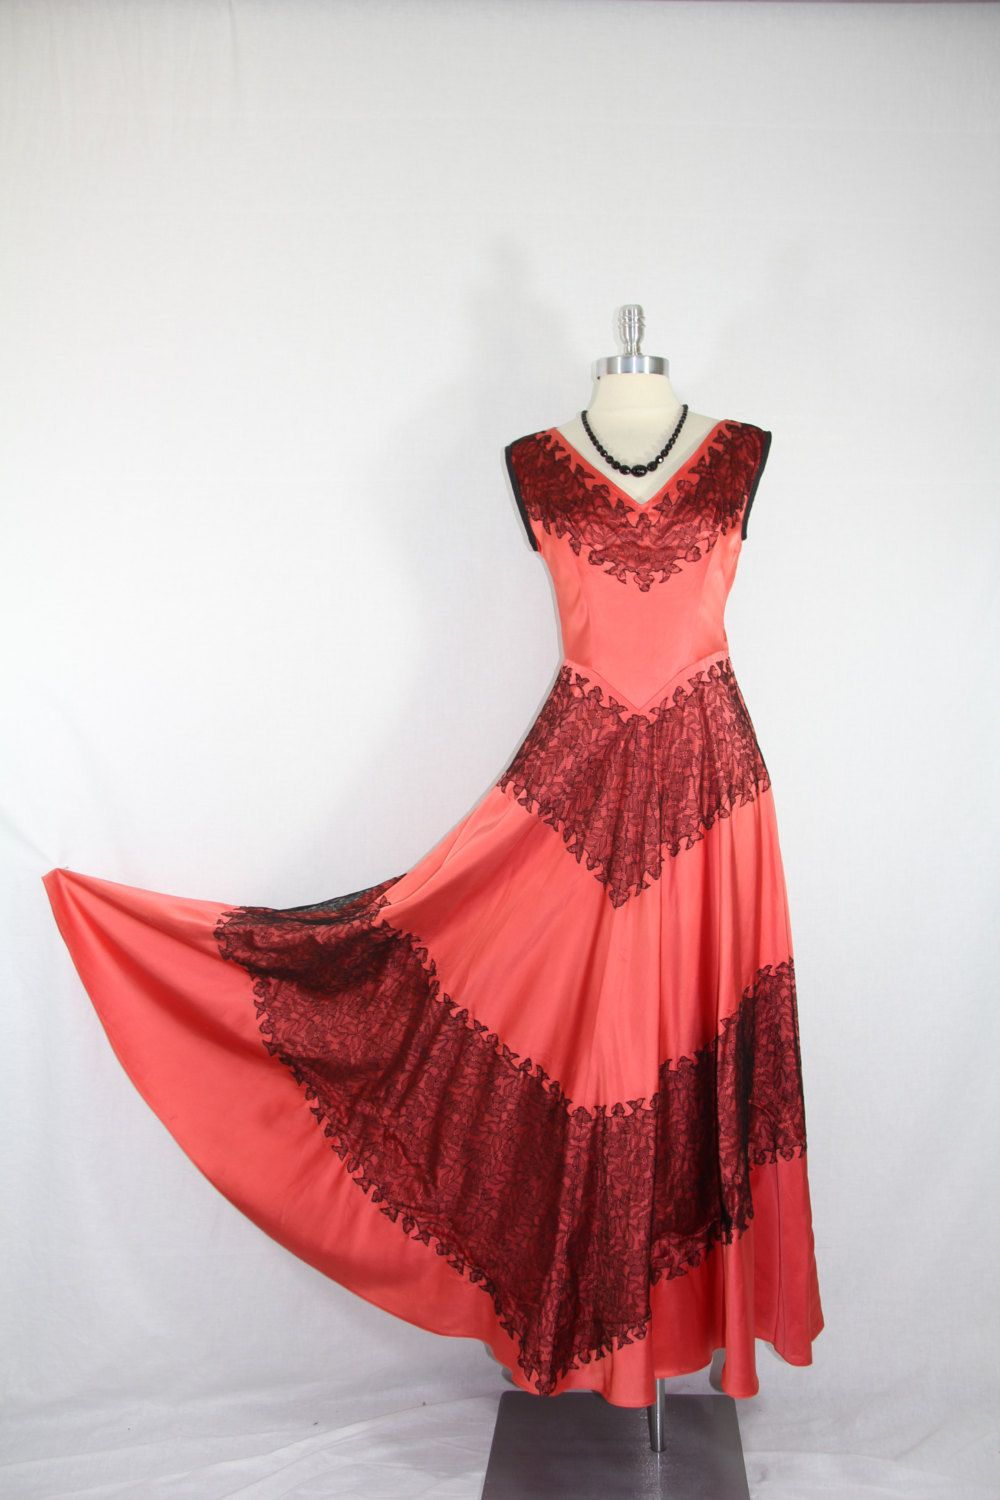 S vintage dress coral satin with black lace wedding party prom